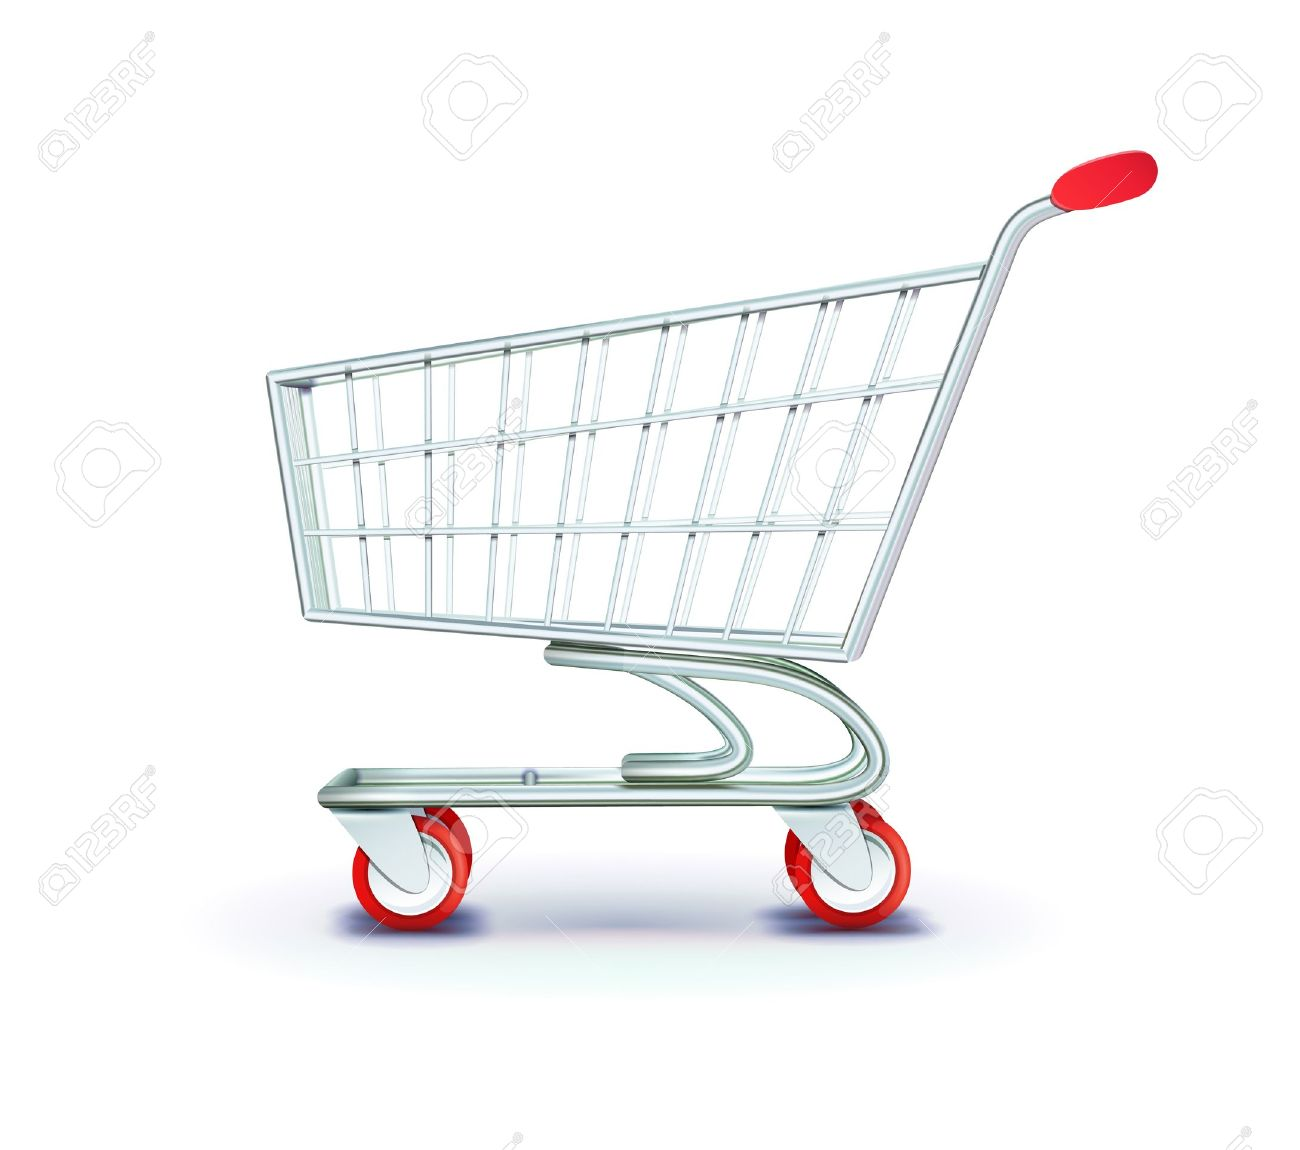 illustration of side view empty supermarket shopping cart isolated on white background. - 11576394